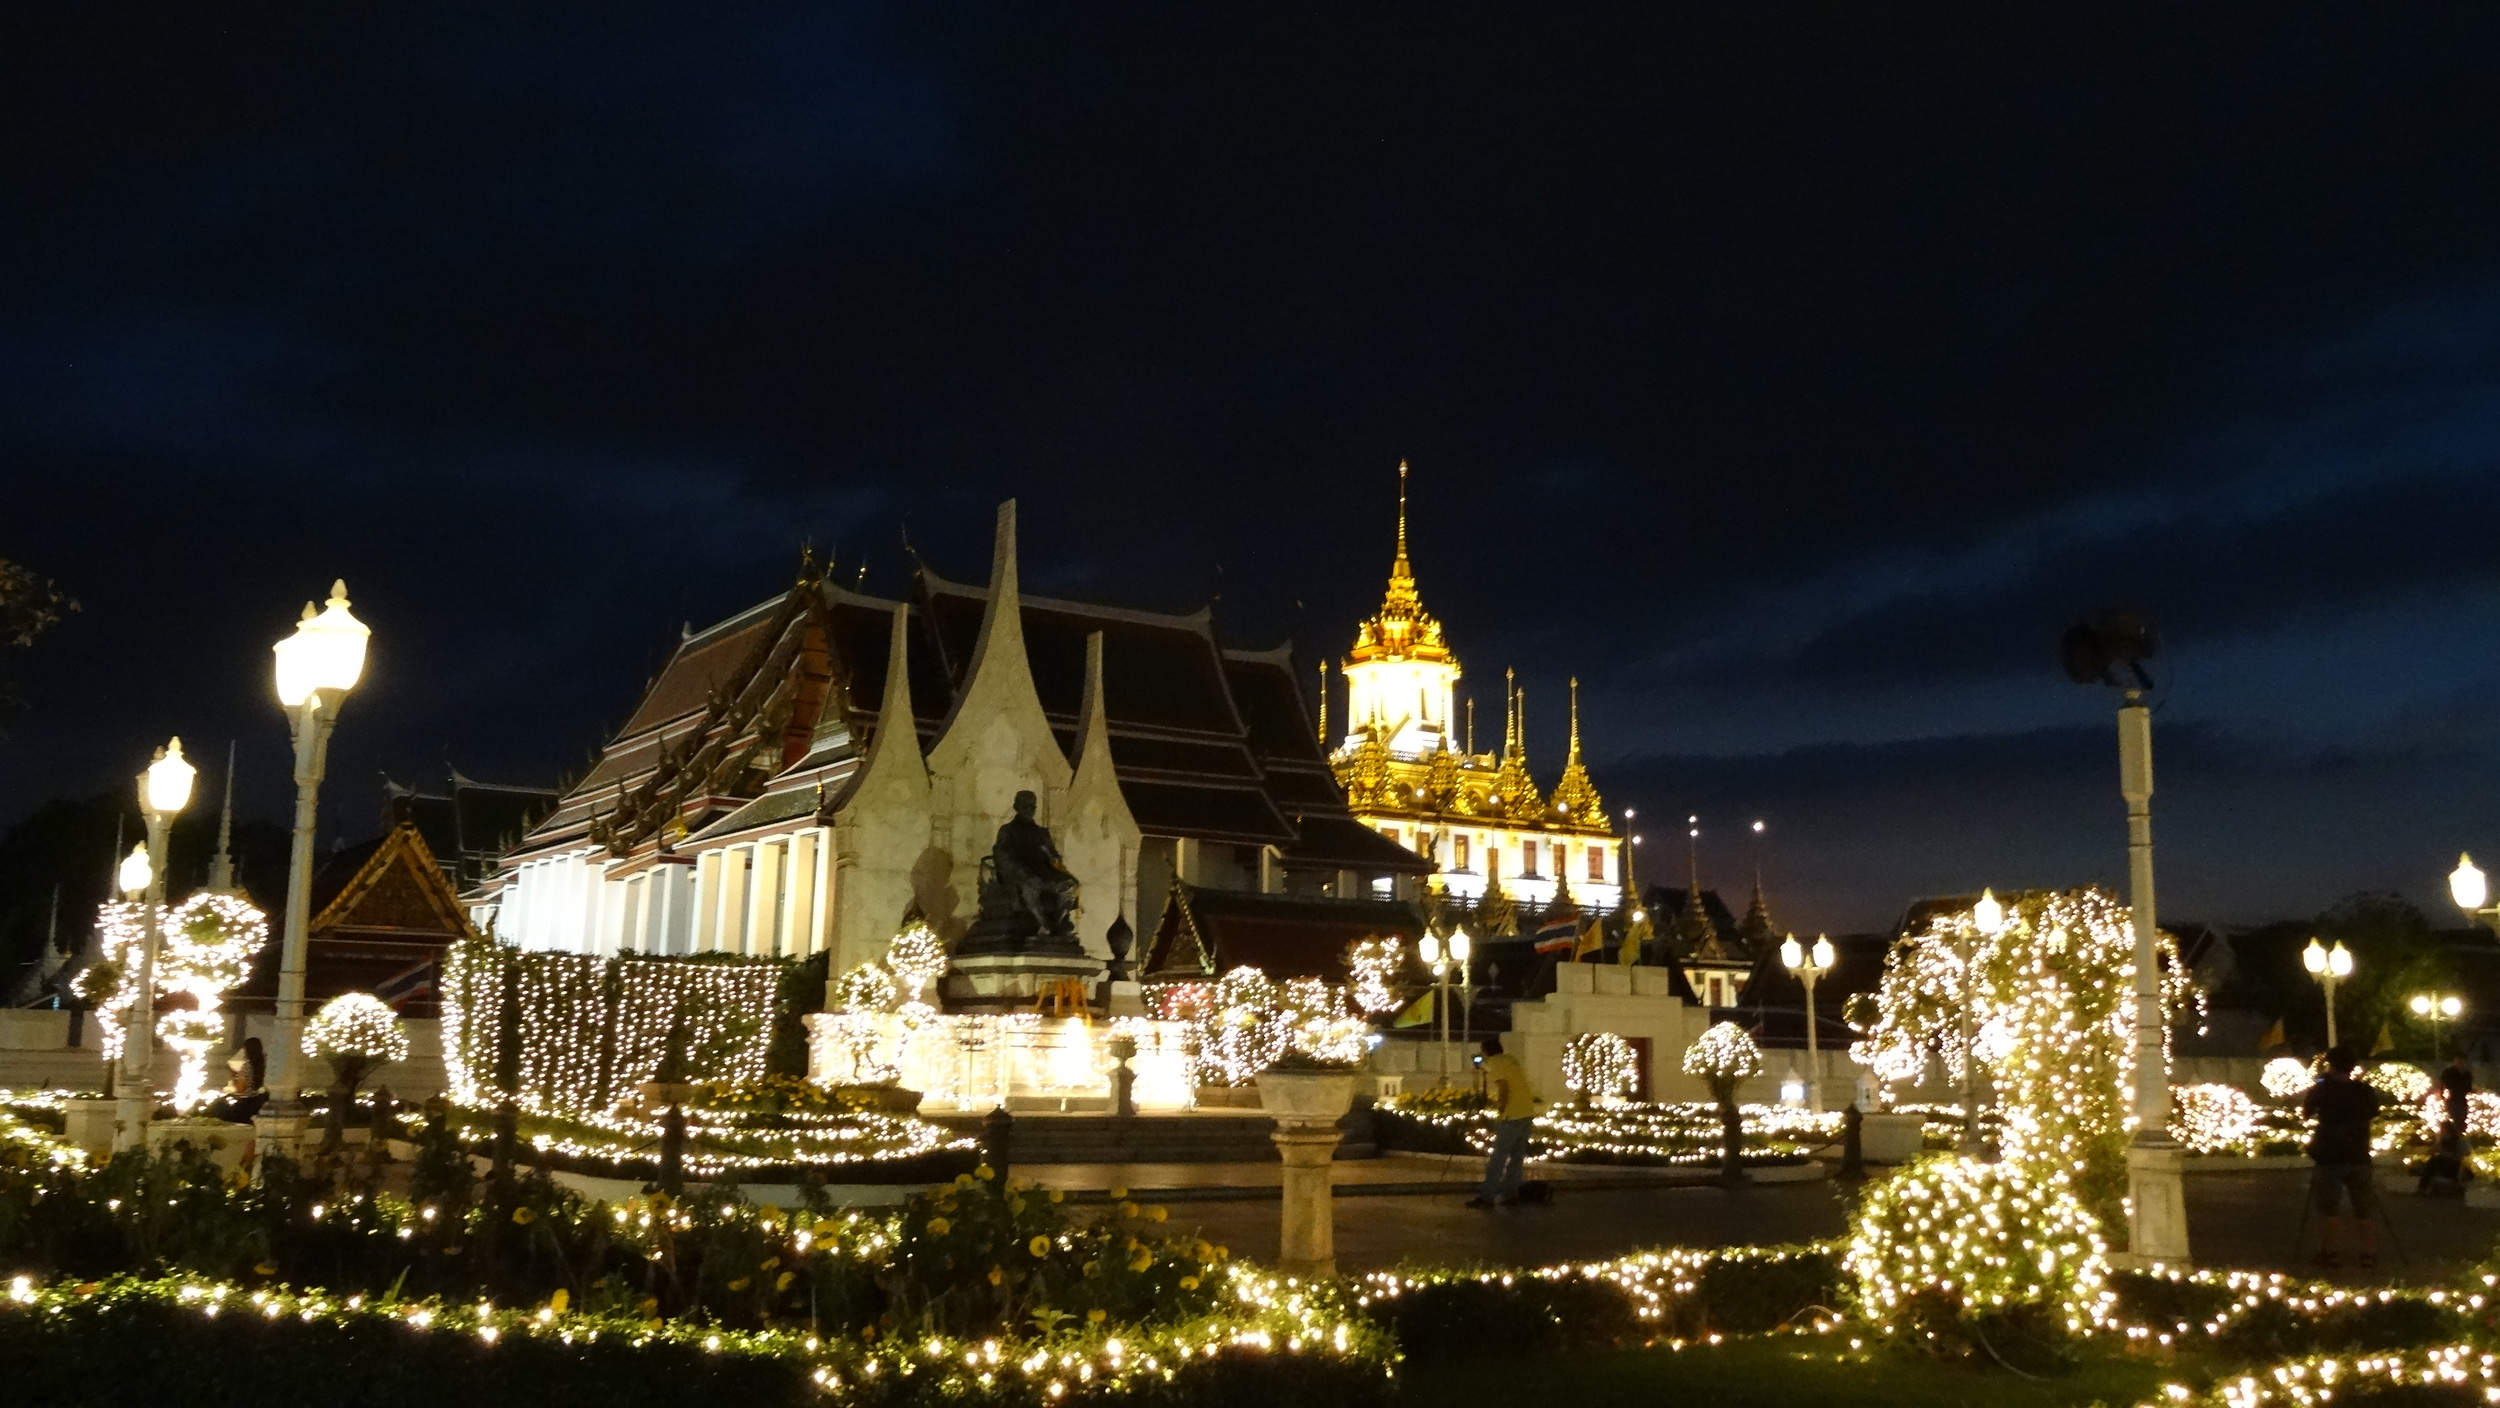 Grand Palace, dusk. A wonderland of temples and spectacle.